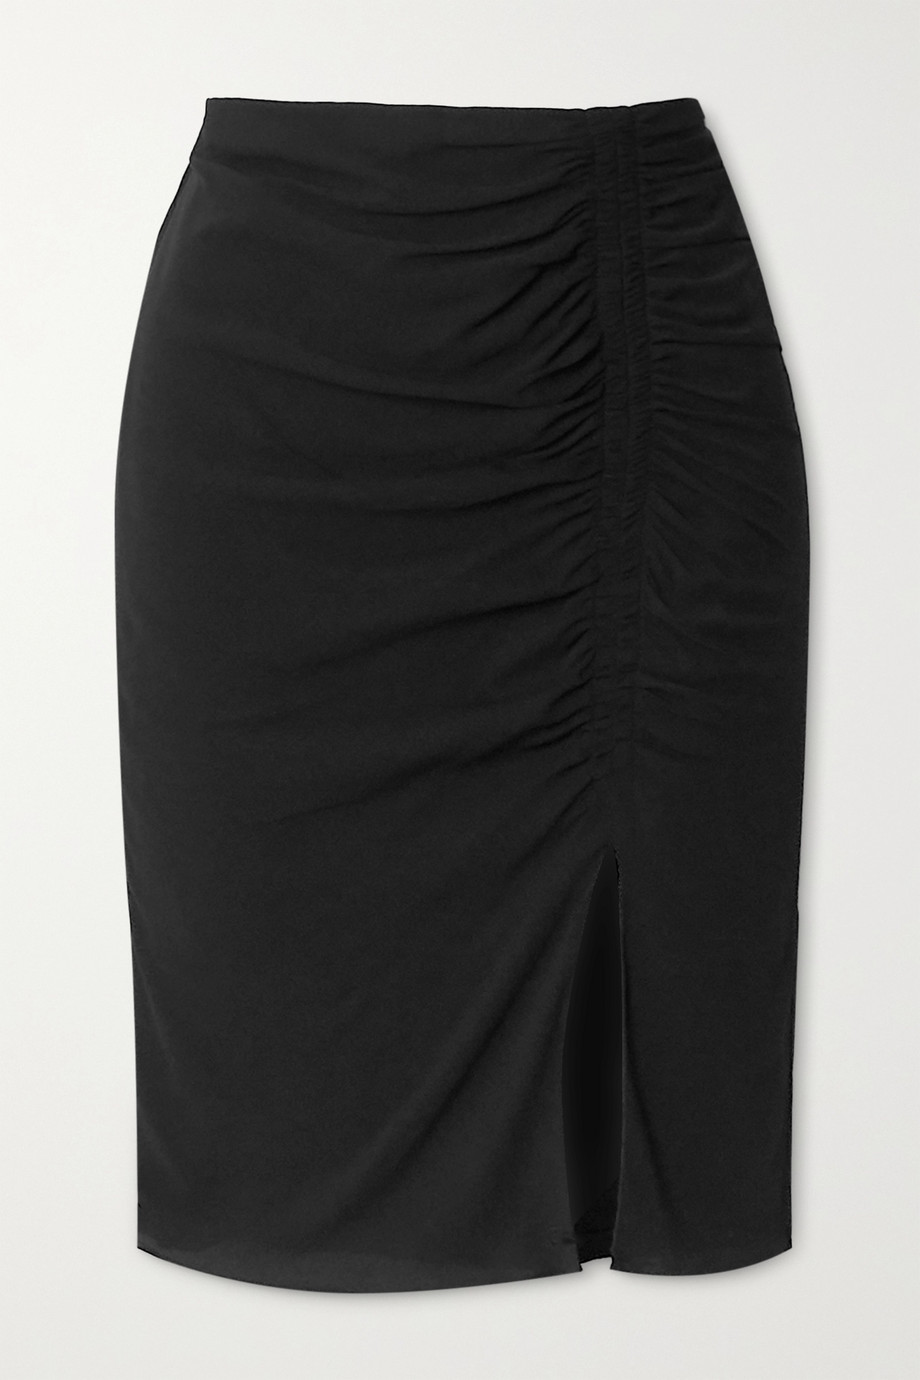 TOM FORD Ruched stretch-crepe midi skirt